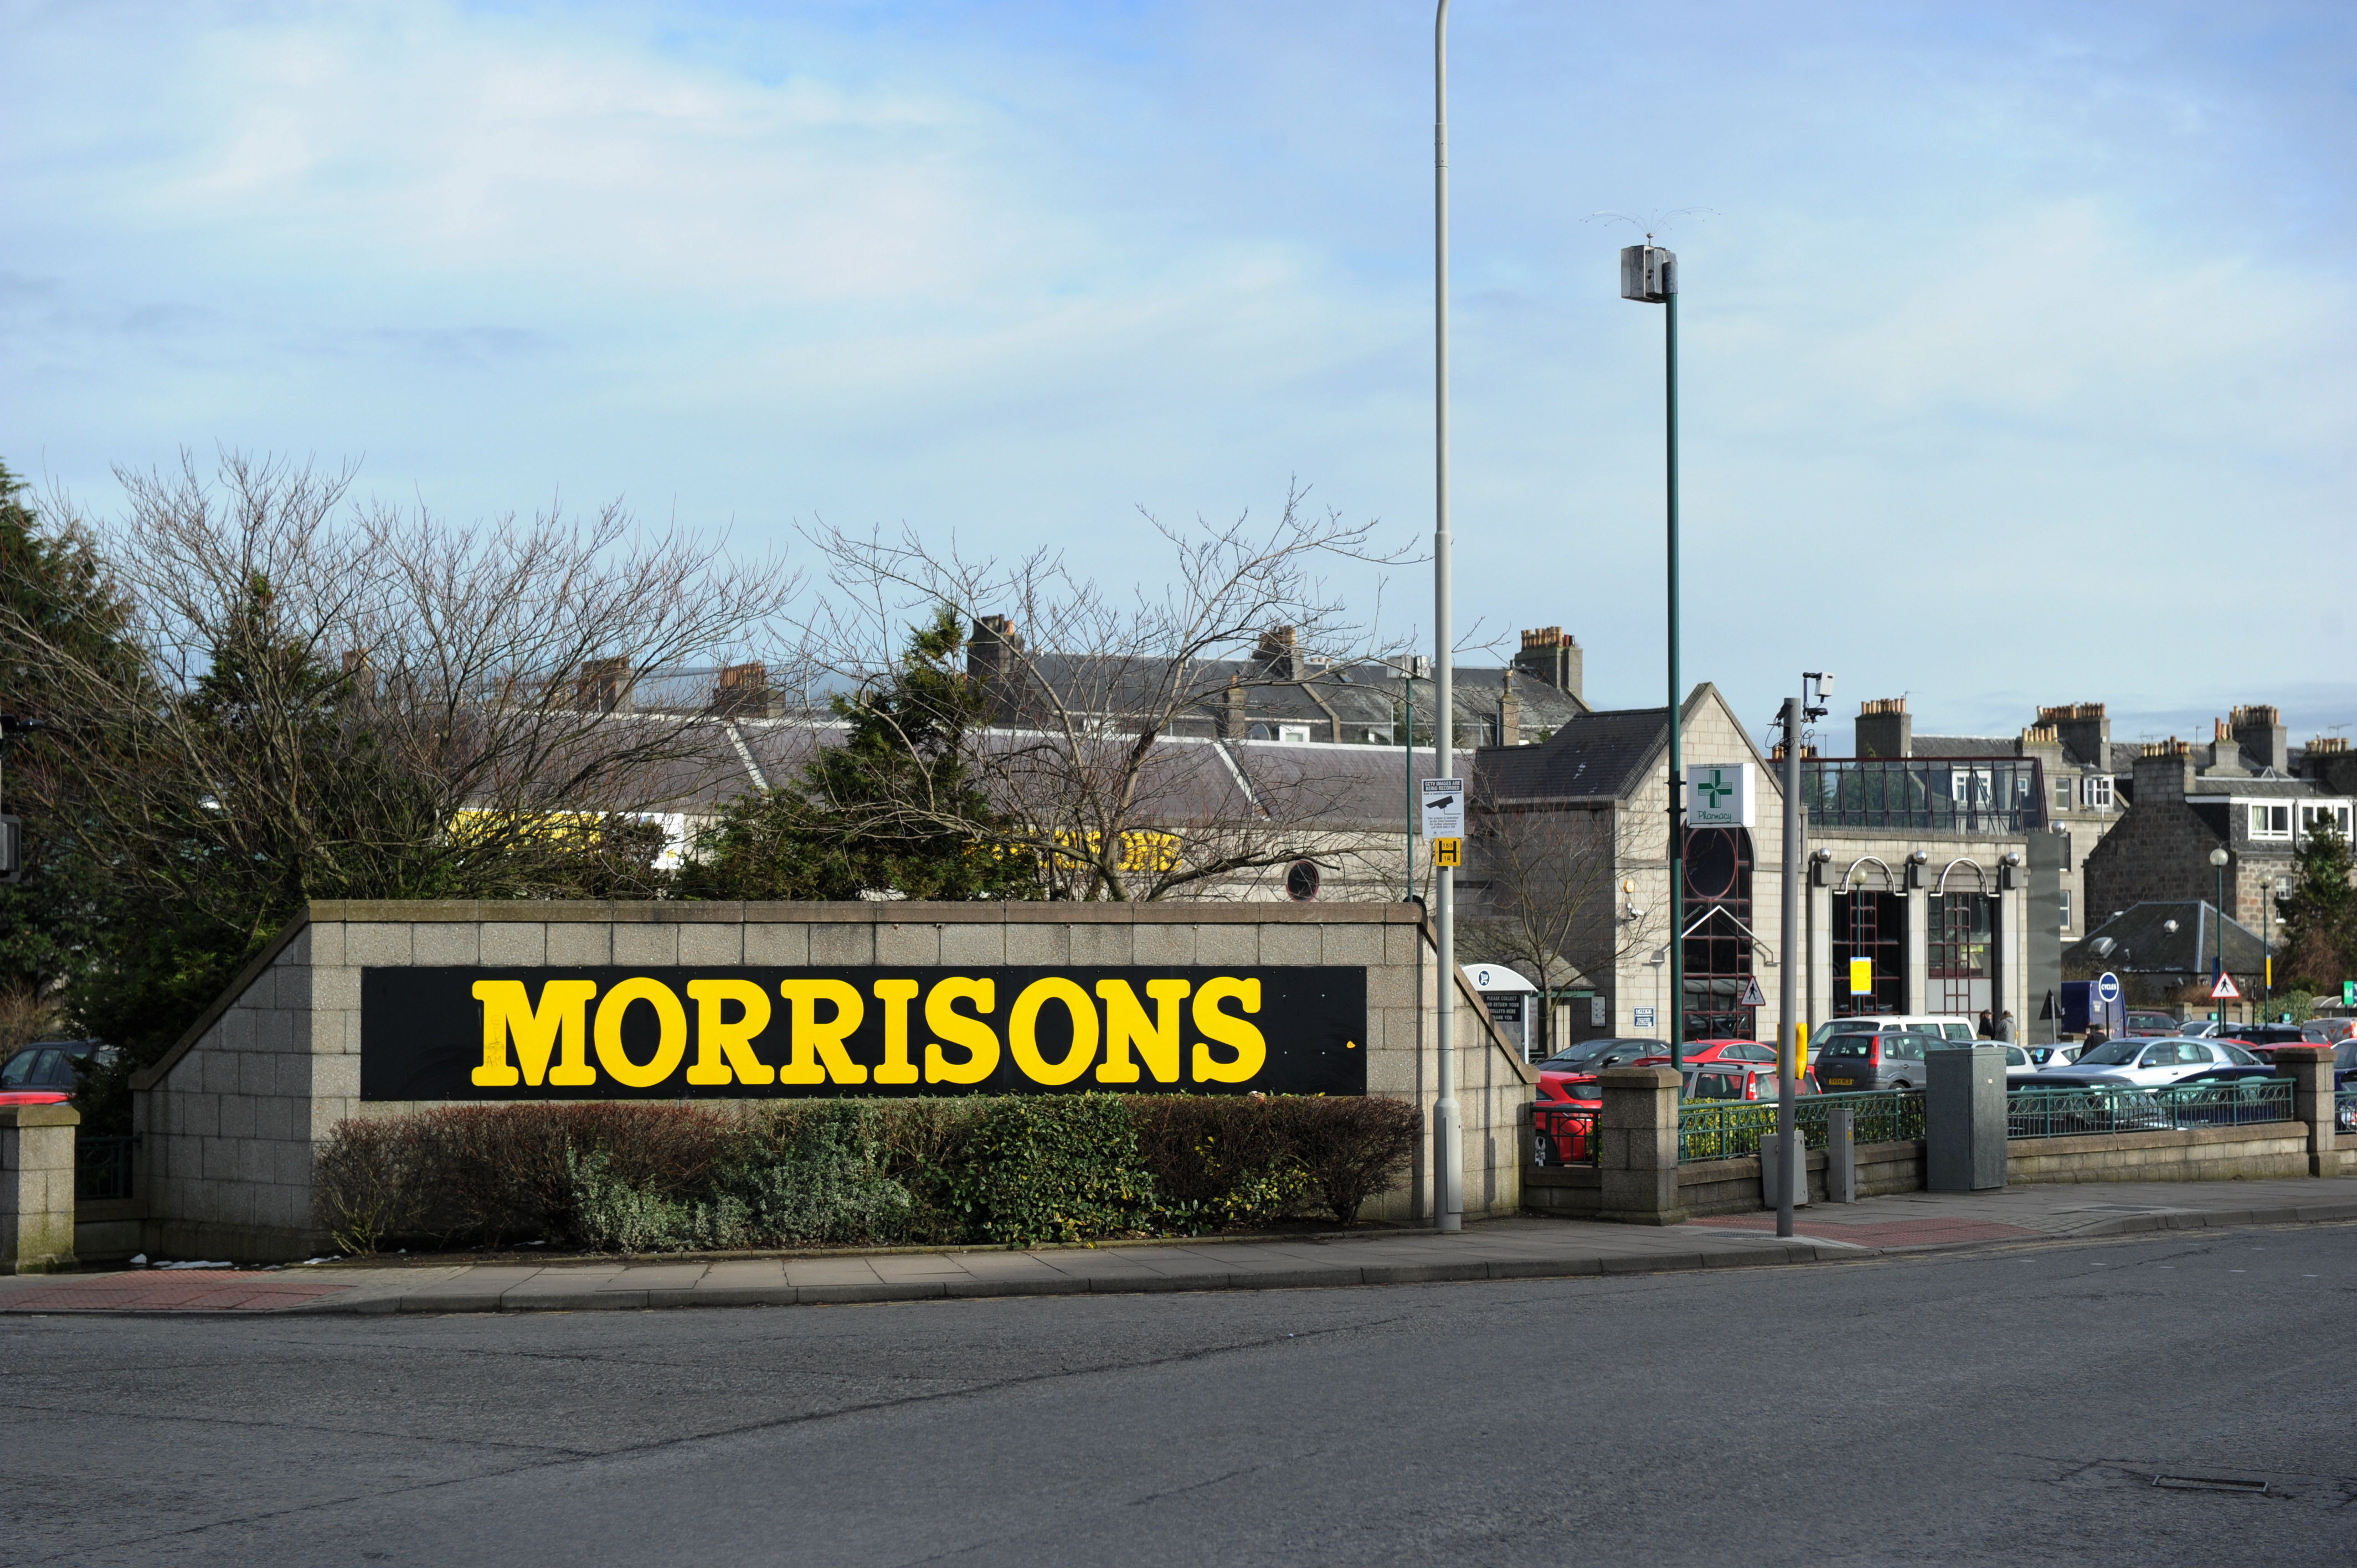 The new area will allow the supermarket to begin carrying out home deliveries for properties around the city